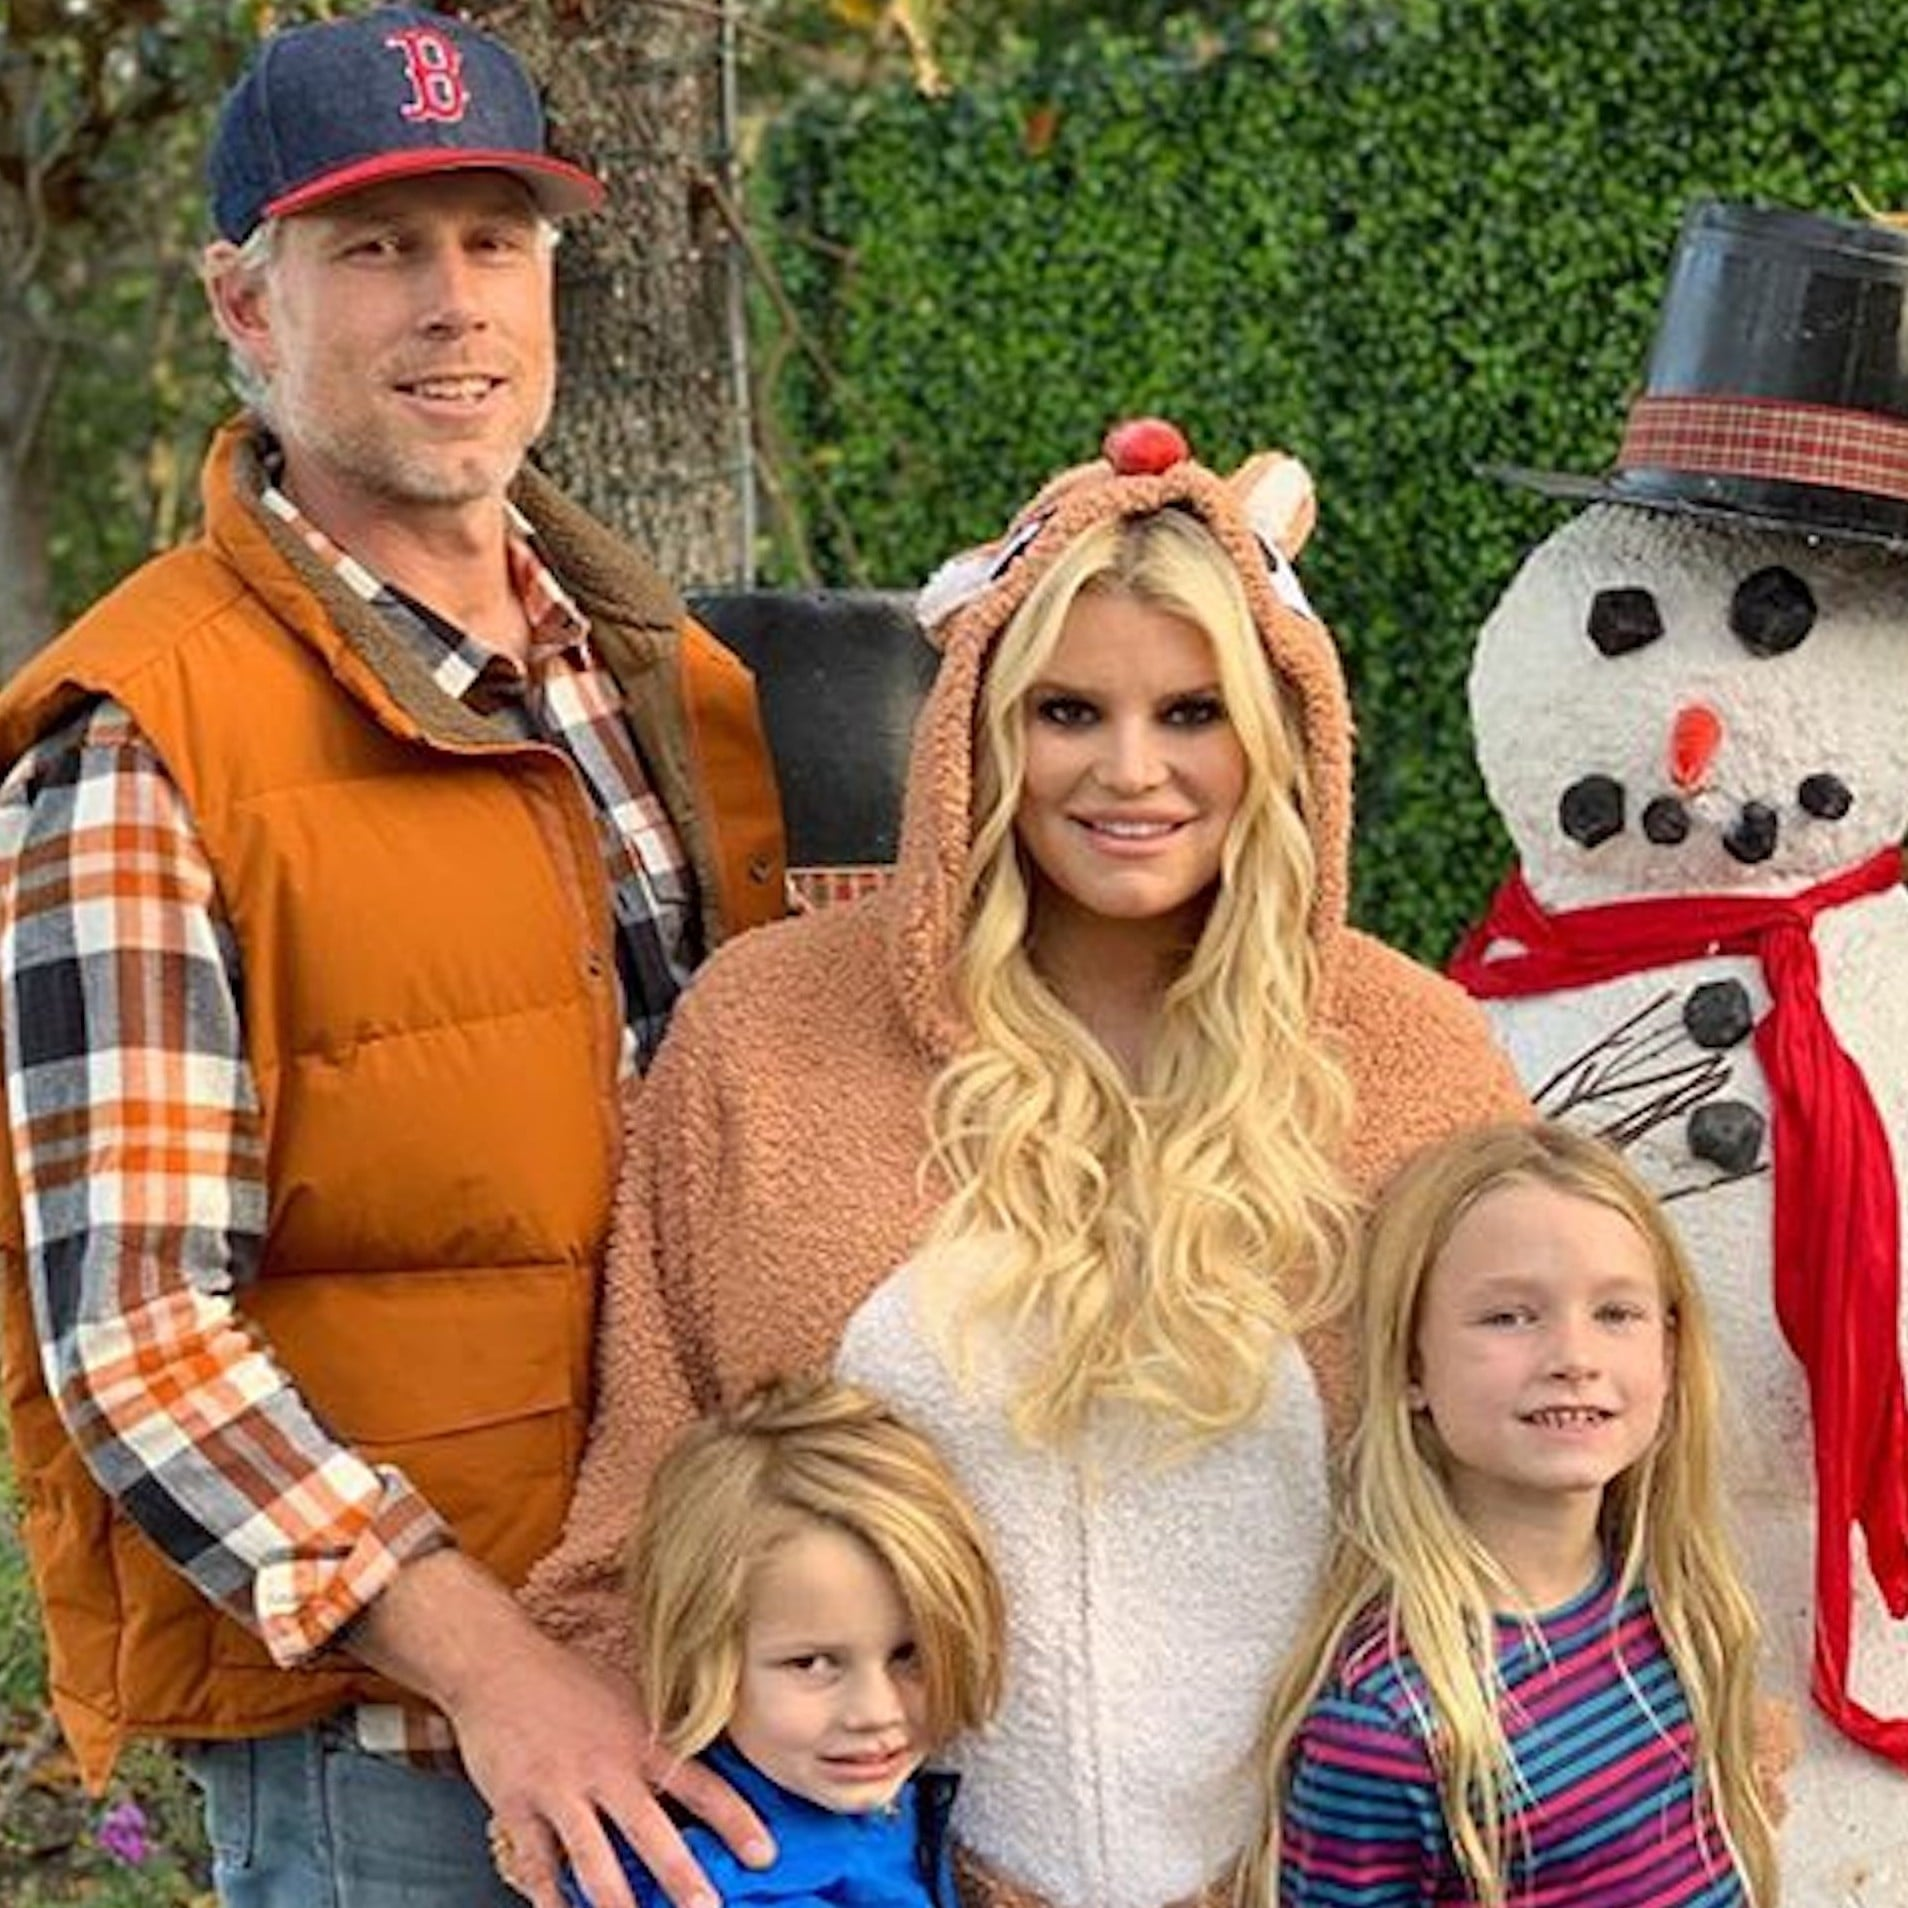 ea522009c1325 Jessica Simpson's Family Snow Day Party Pictures 2018 | POPSUGAR Celebrity